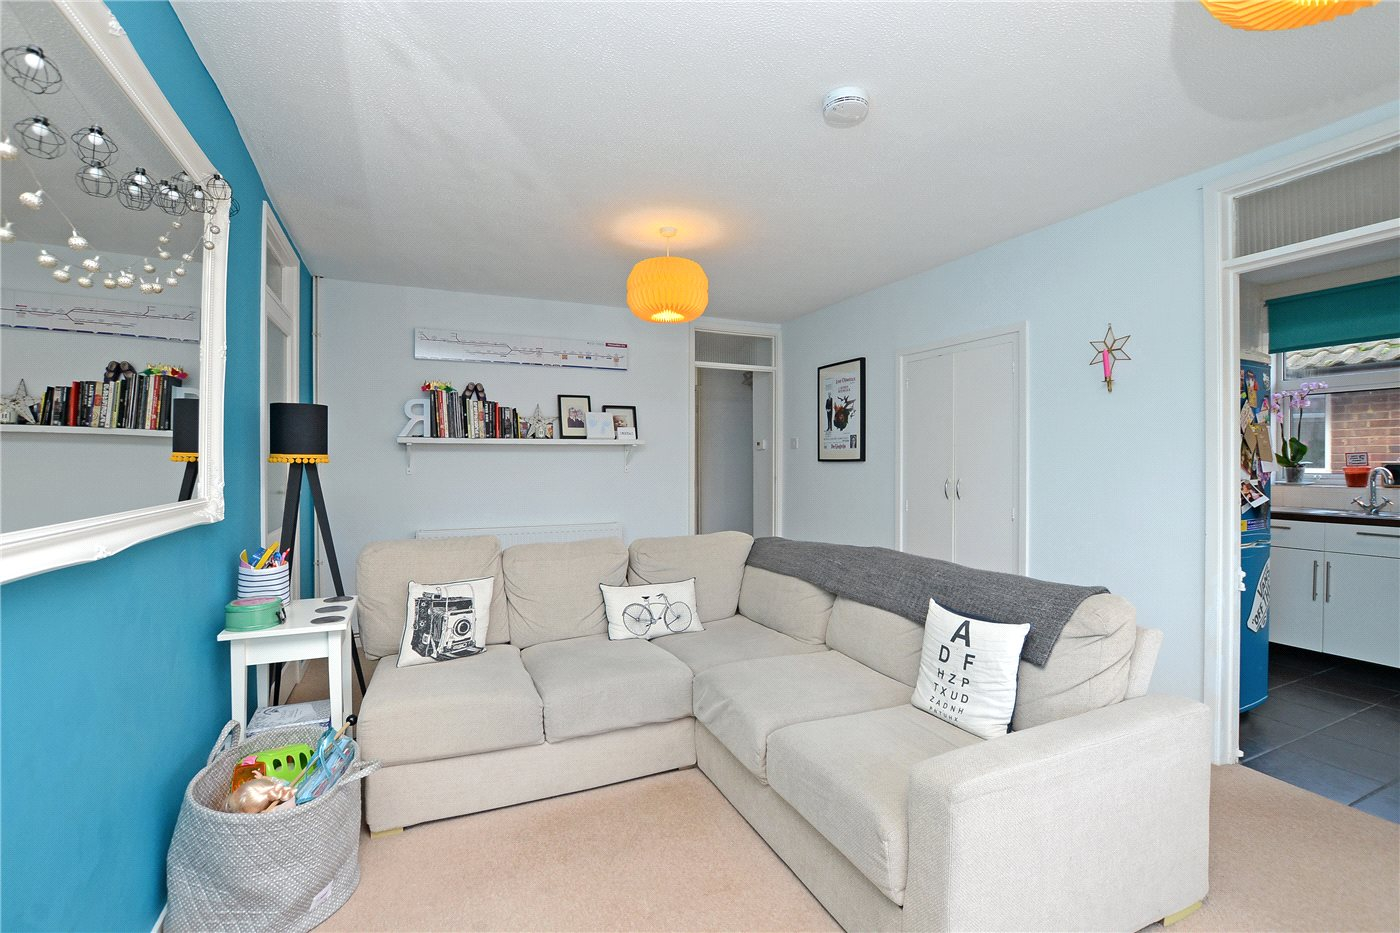 2 Bedrooms Maisonette Flat for sale in Hampton Road, Worcester Park, KT4